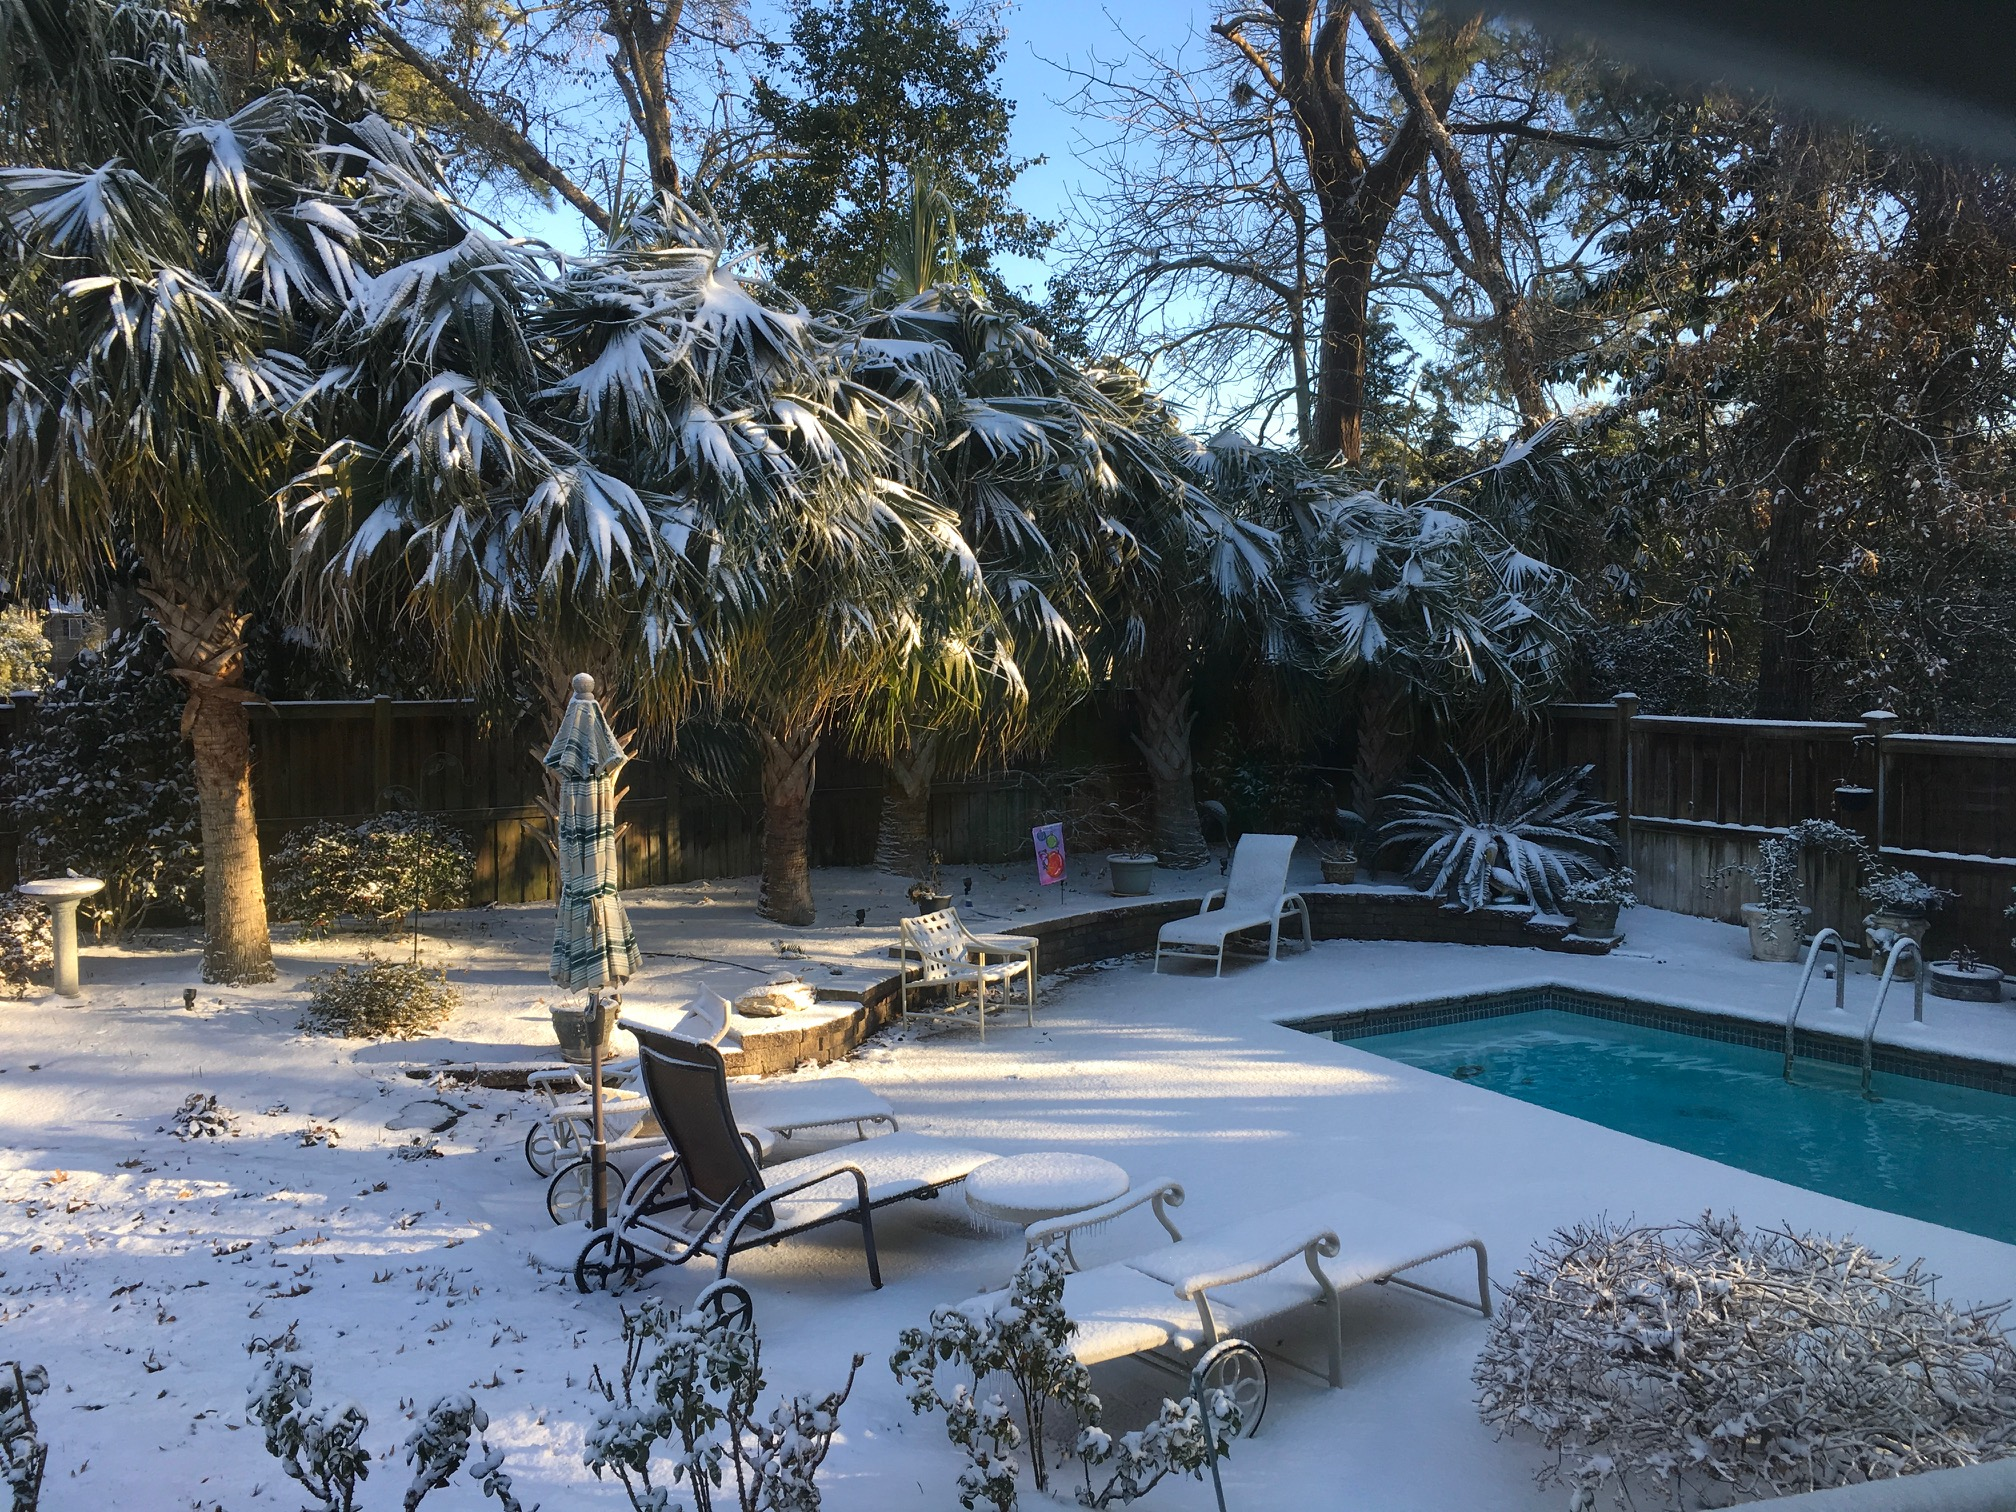 "<div class=""meta image-caption""><div class=""origin-logo origin-image none""><span>none</span></div><span class=""caption-text"">Snow in Wilmington. (Linda Thorburn - ABC11 Eyewitness)</span></div>"